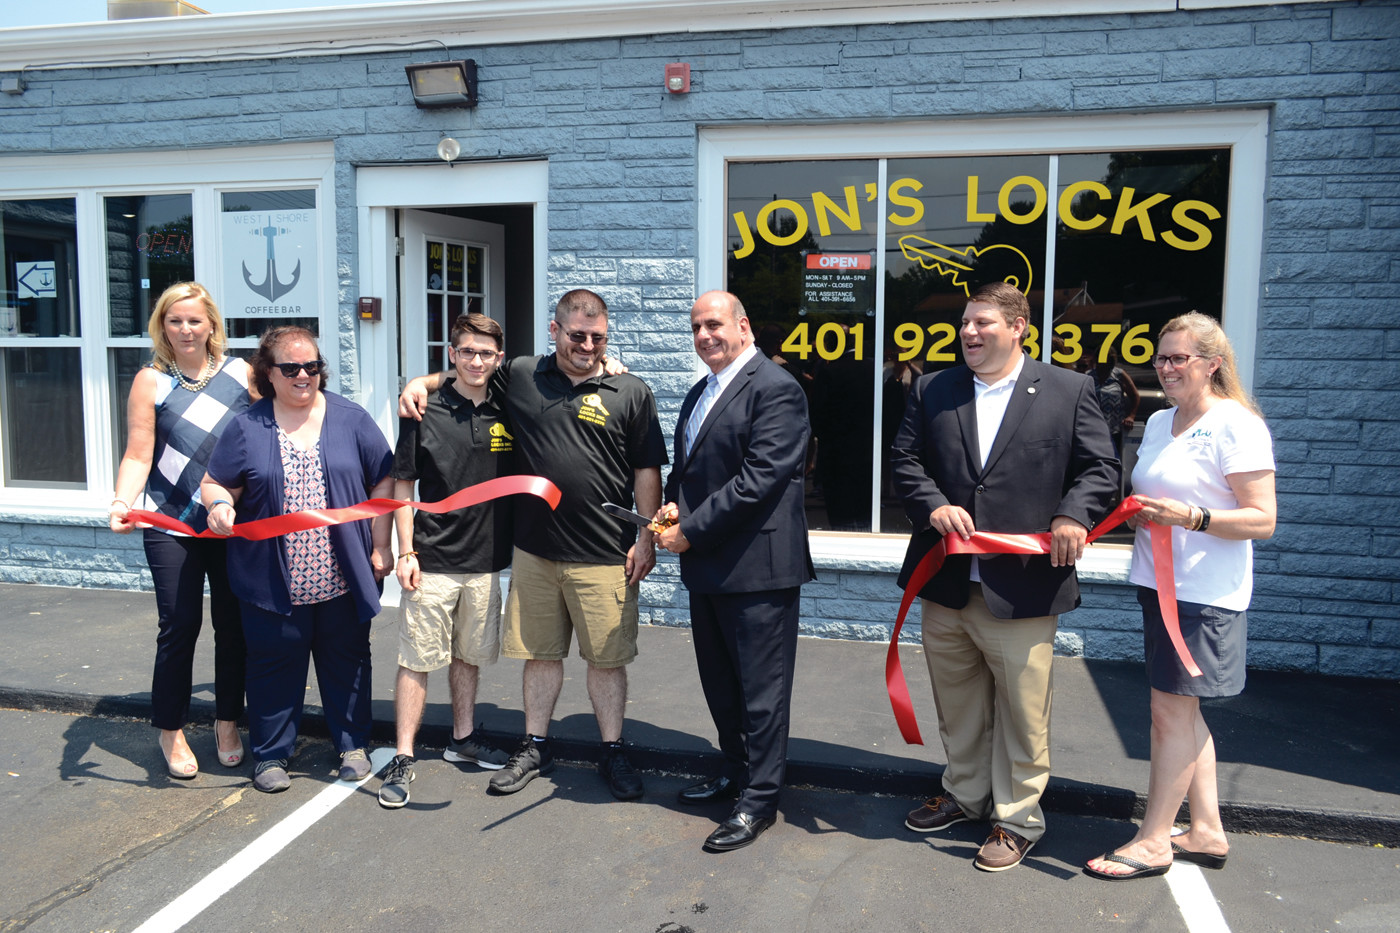 TWO FOR ONE SPECIAL: From left to right, Karen Jedson, Rep. Camille Vella-Wilkinson, Zachary Issa, Jonathan Issa, Mayor Joseph Solomon, Ward 7 Councilman Stephen McAllister and Lauren Slocum cut the ribbon for Jon's Locks.